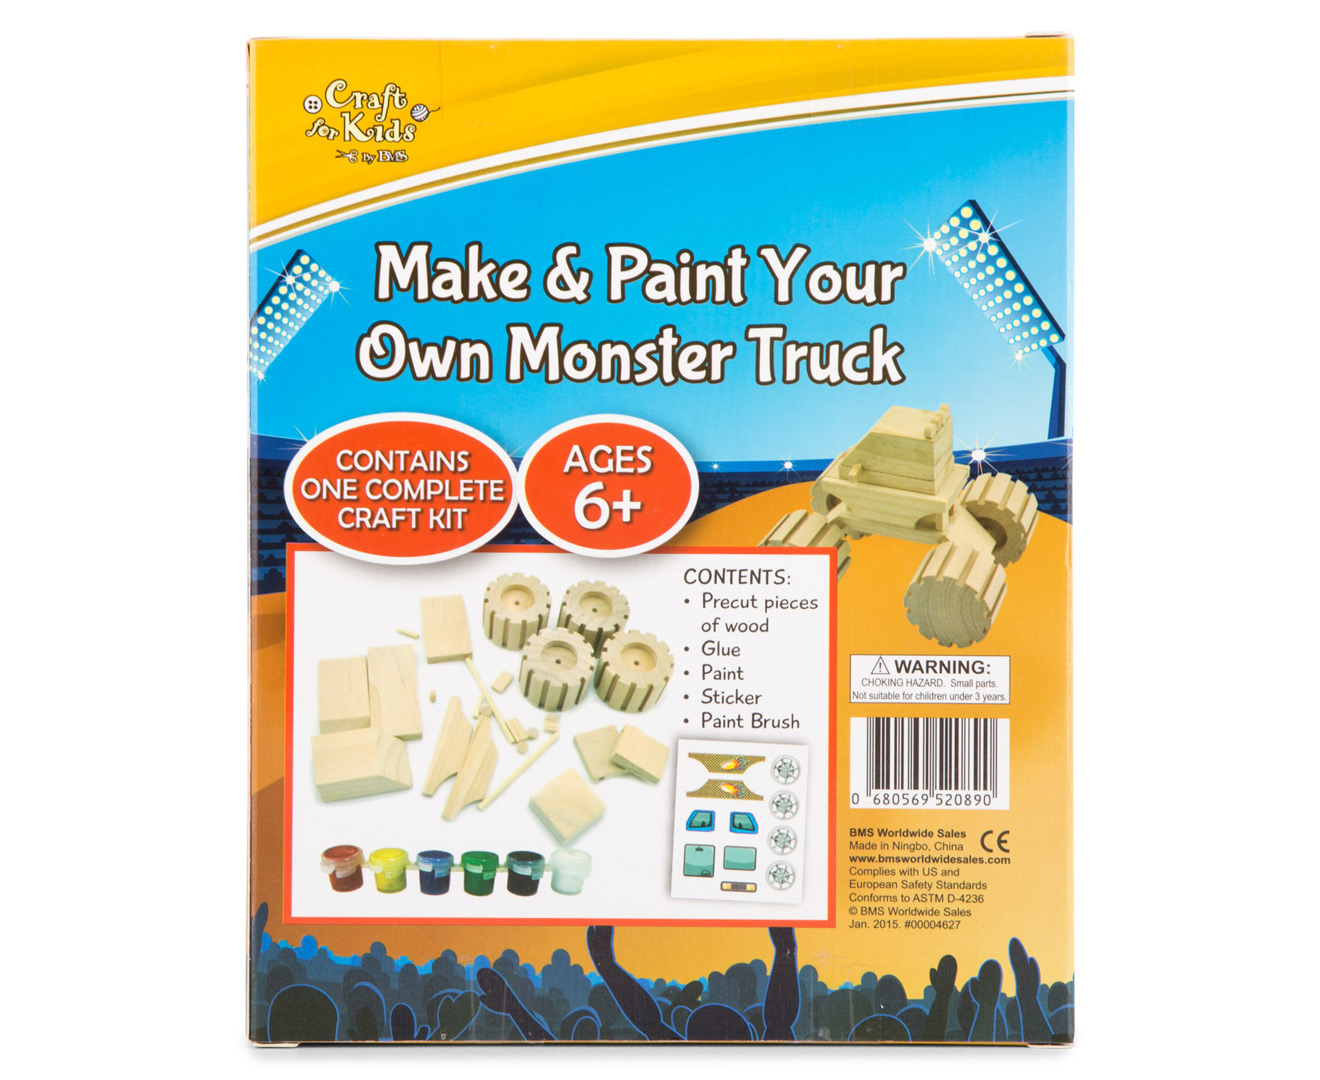 Boy Craft Build Your Own Monster Truck Instructions